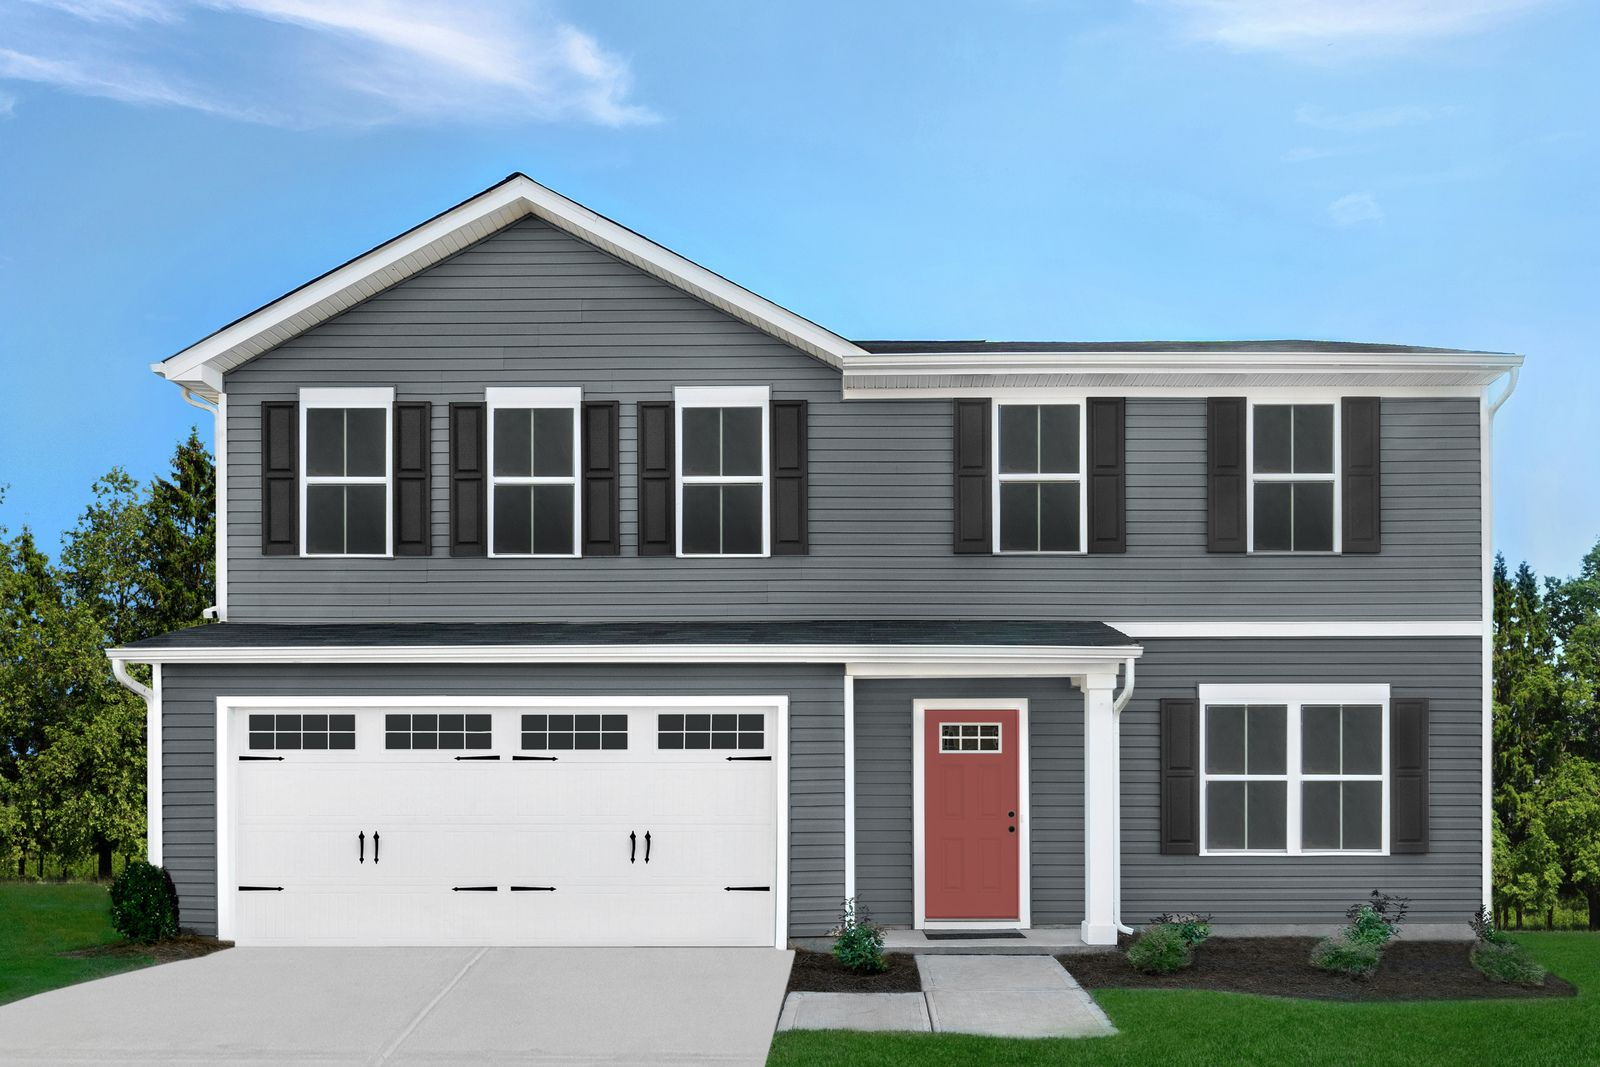 Welcome to Wright Landing:Lowest-priced new homes in Montgomery County. Own for same as rent—included appliances, 3-5 beds & attached 2-car garage. Minutes to I-75 & I-675—from low $200s.Find out more about Wright Landing!